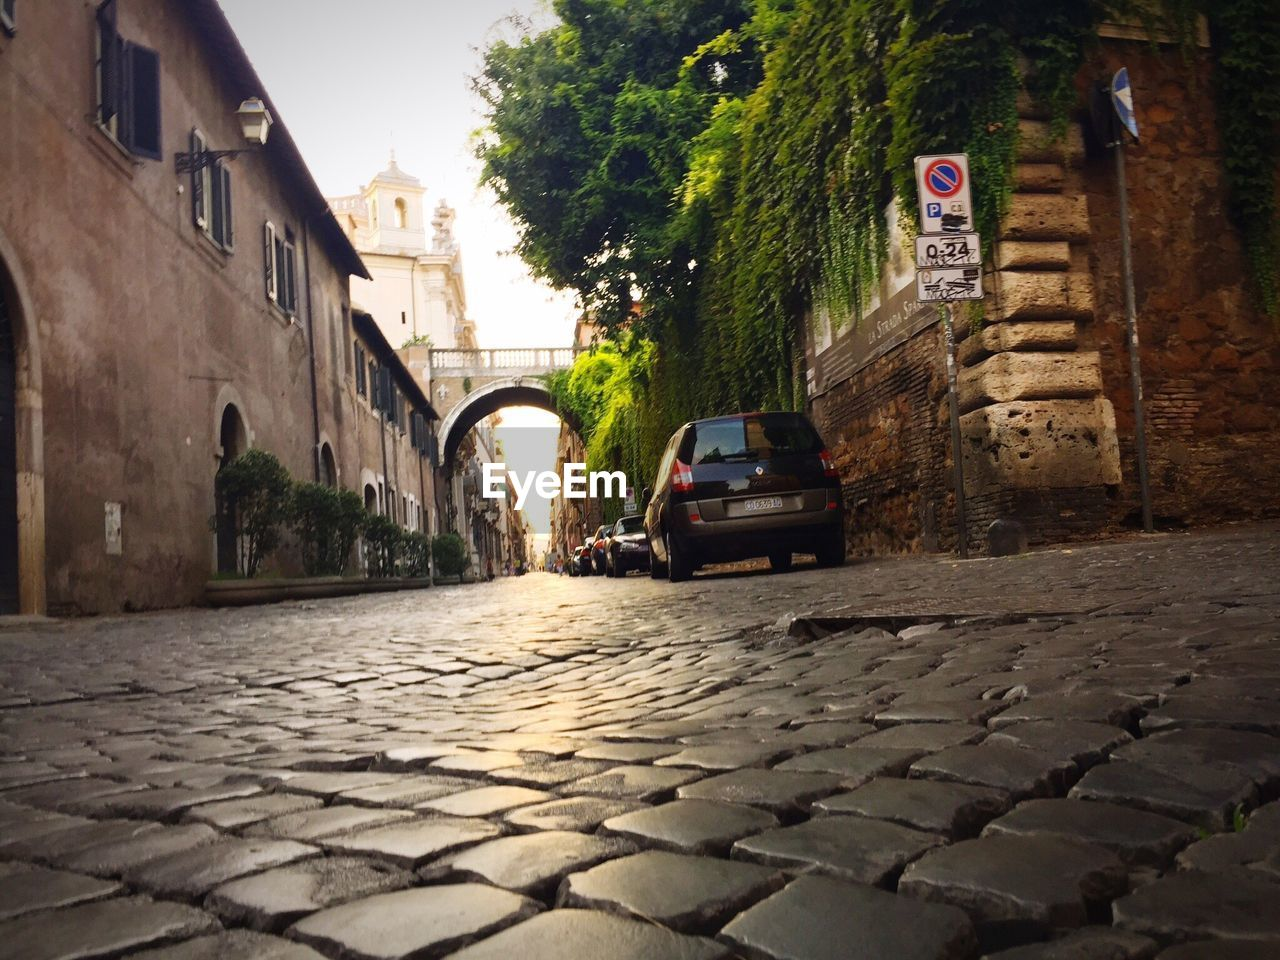 architecture, land vehicle, car, built structure, transportation, building exterior, cobblestone, mode of transport, street, outdoors, day, stationary, no people, tree, city, sky